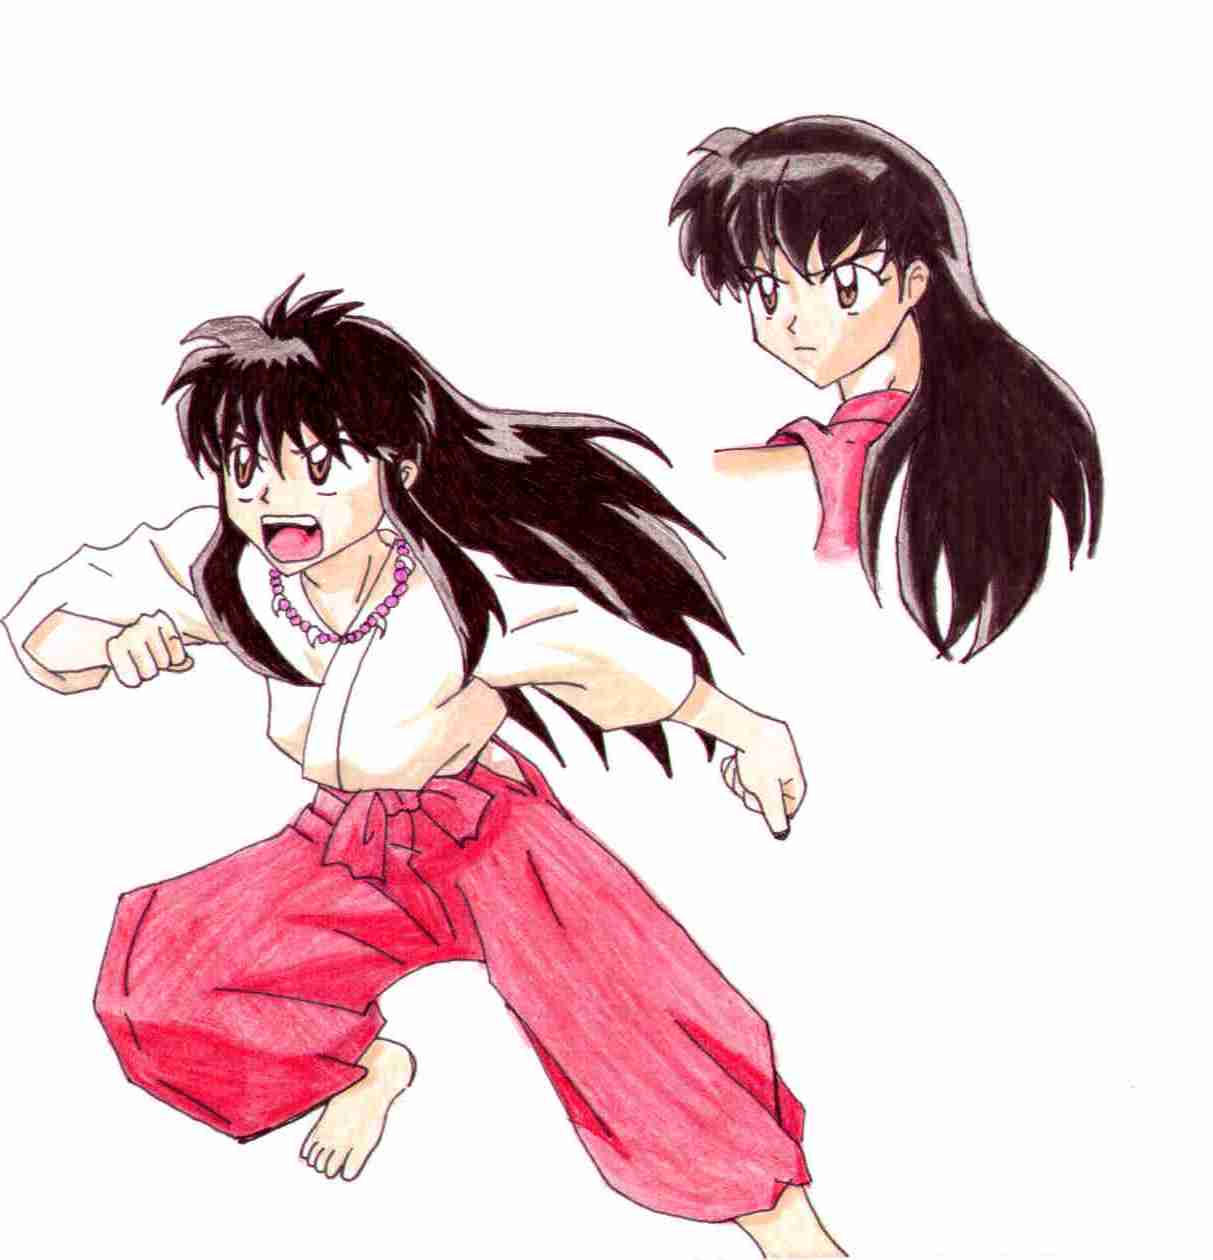 Human Inuyasha By Fred-Weasley On DeviantArt